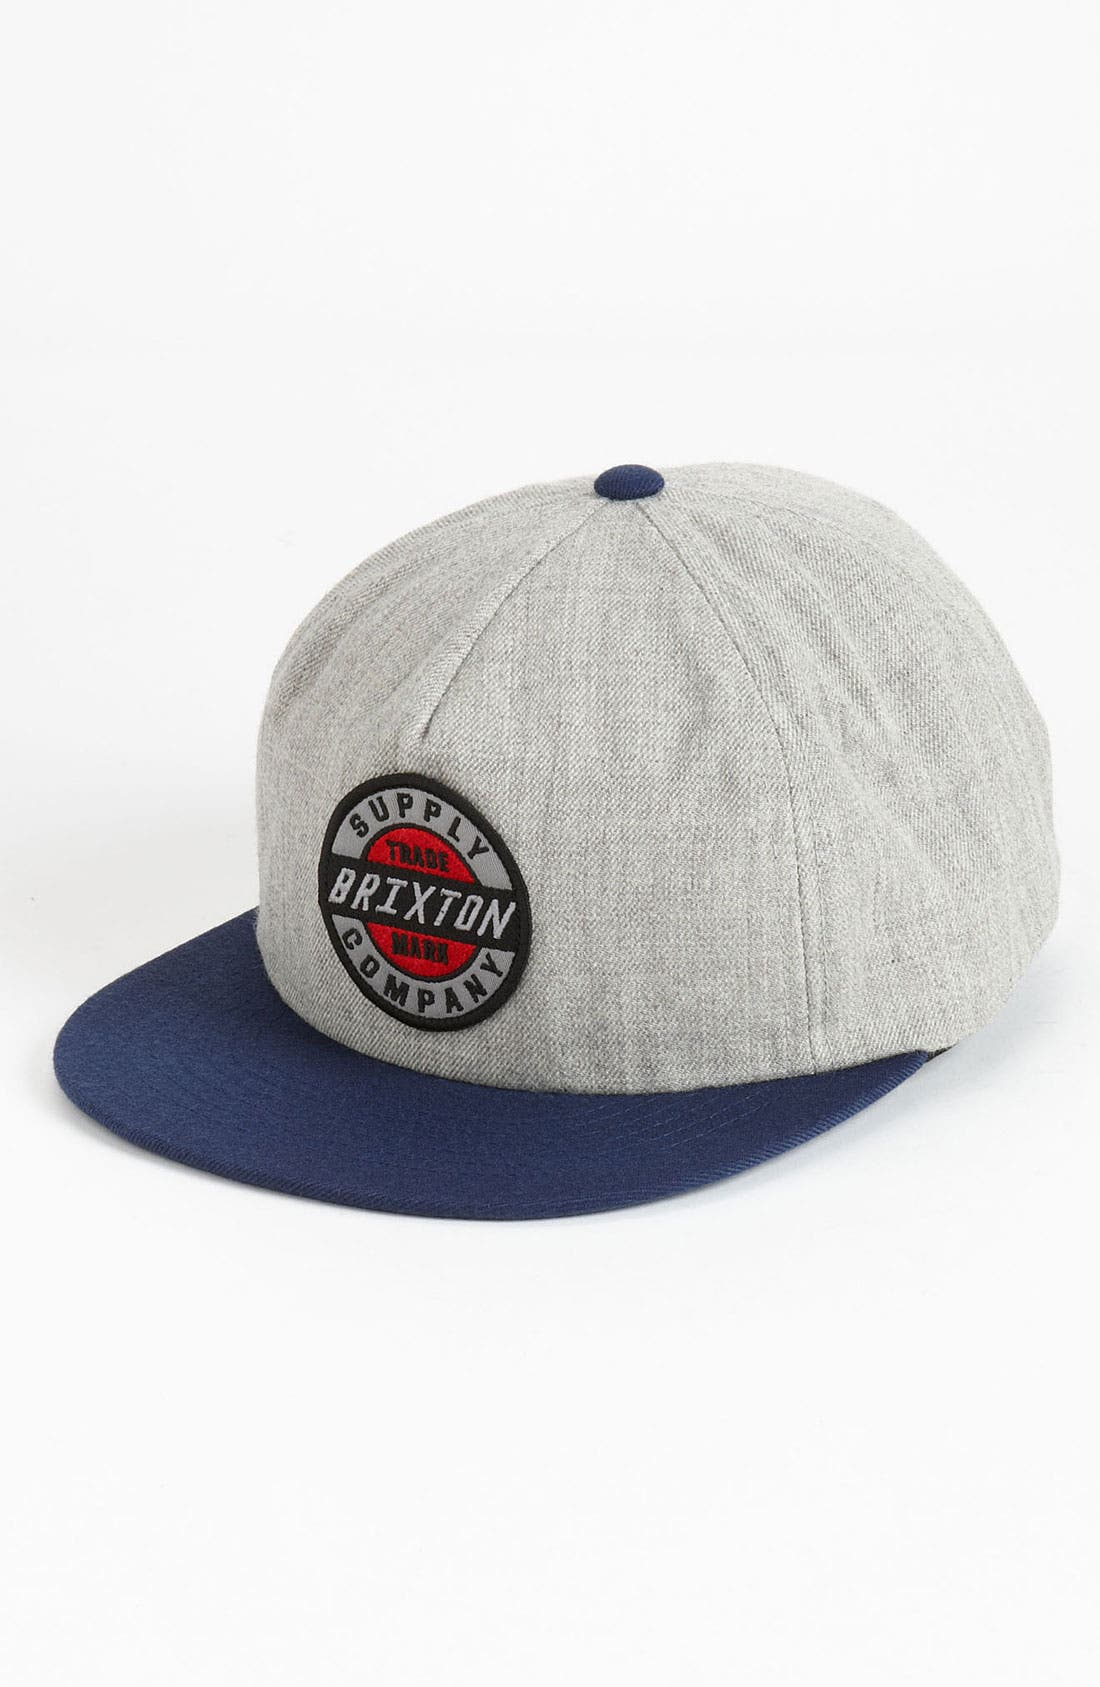 Main Image - Brixton 'Council' Snapback Baseball Cap